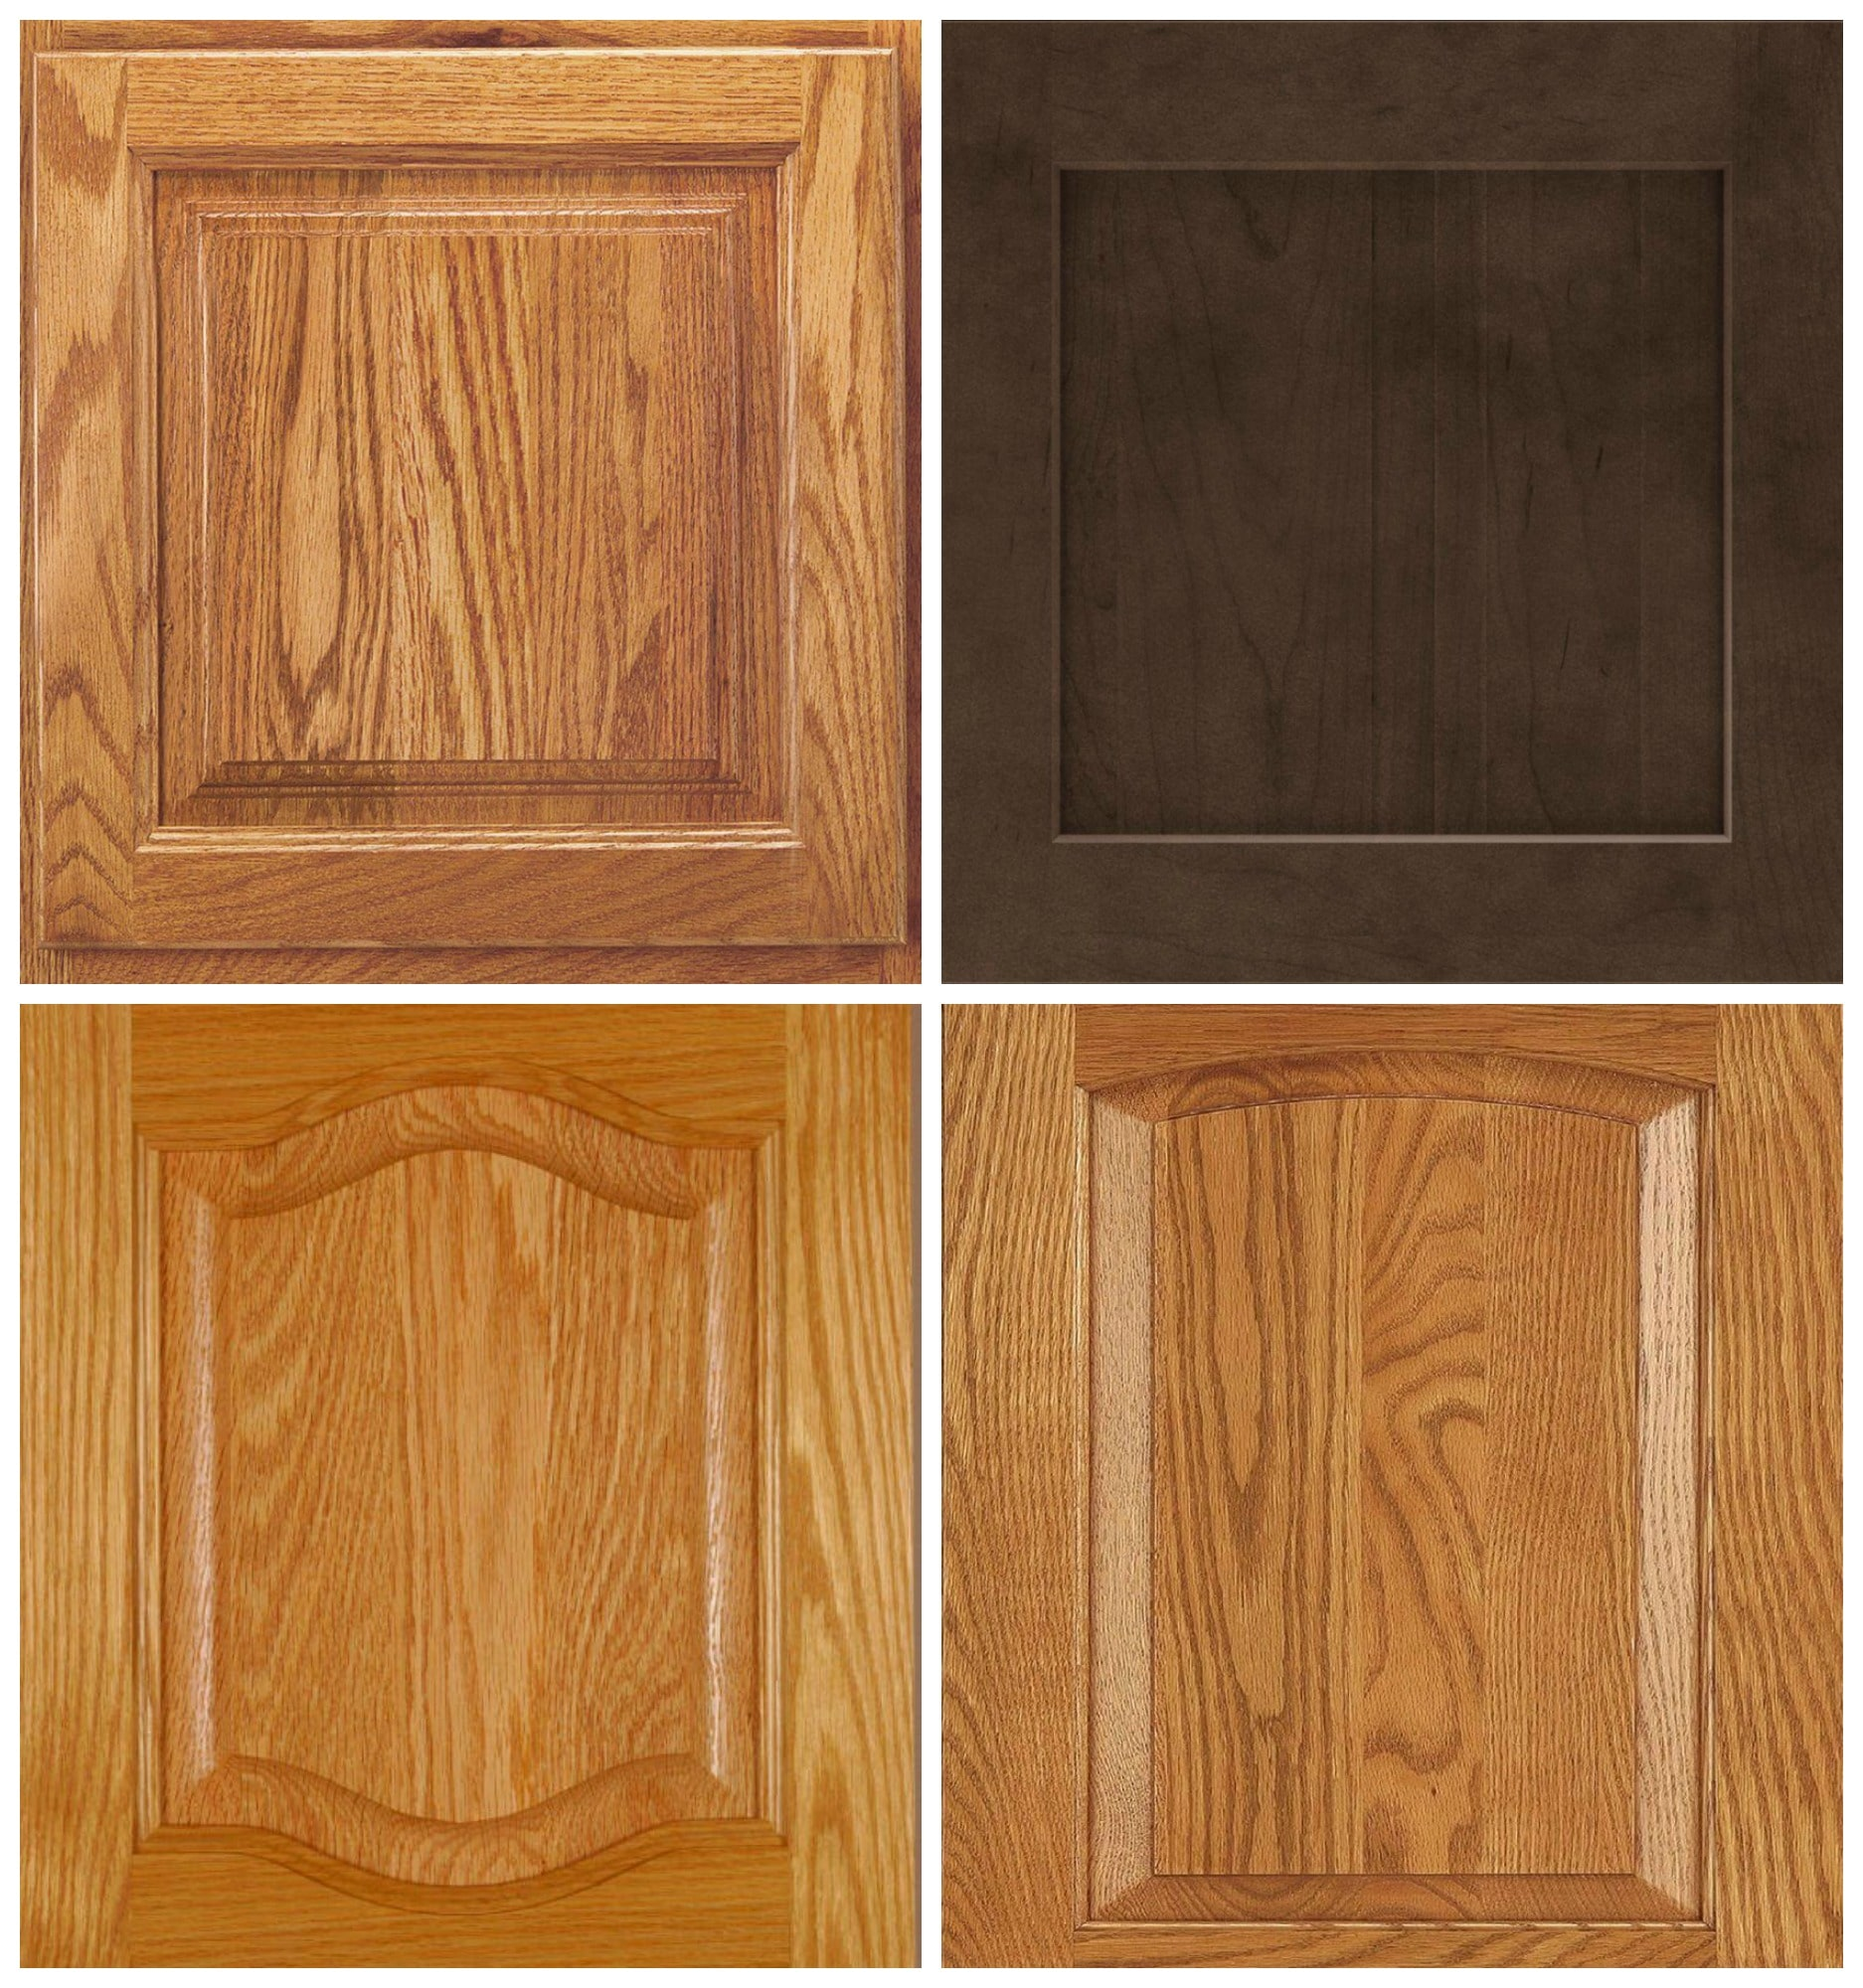 Oak Cabinet Kitchen Ideas Top Medium Oak Kitchen Cabinets: Cabinet Door Profiles, Ideas To Update Oak Cabinets